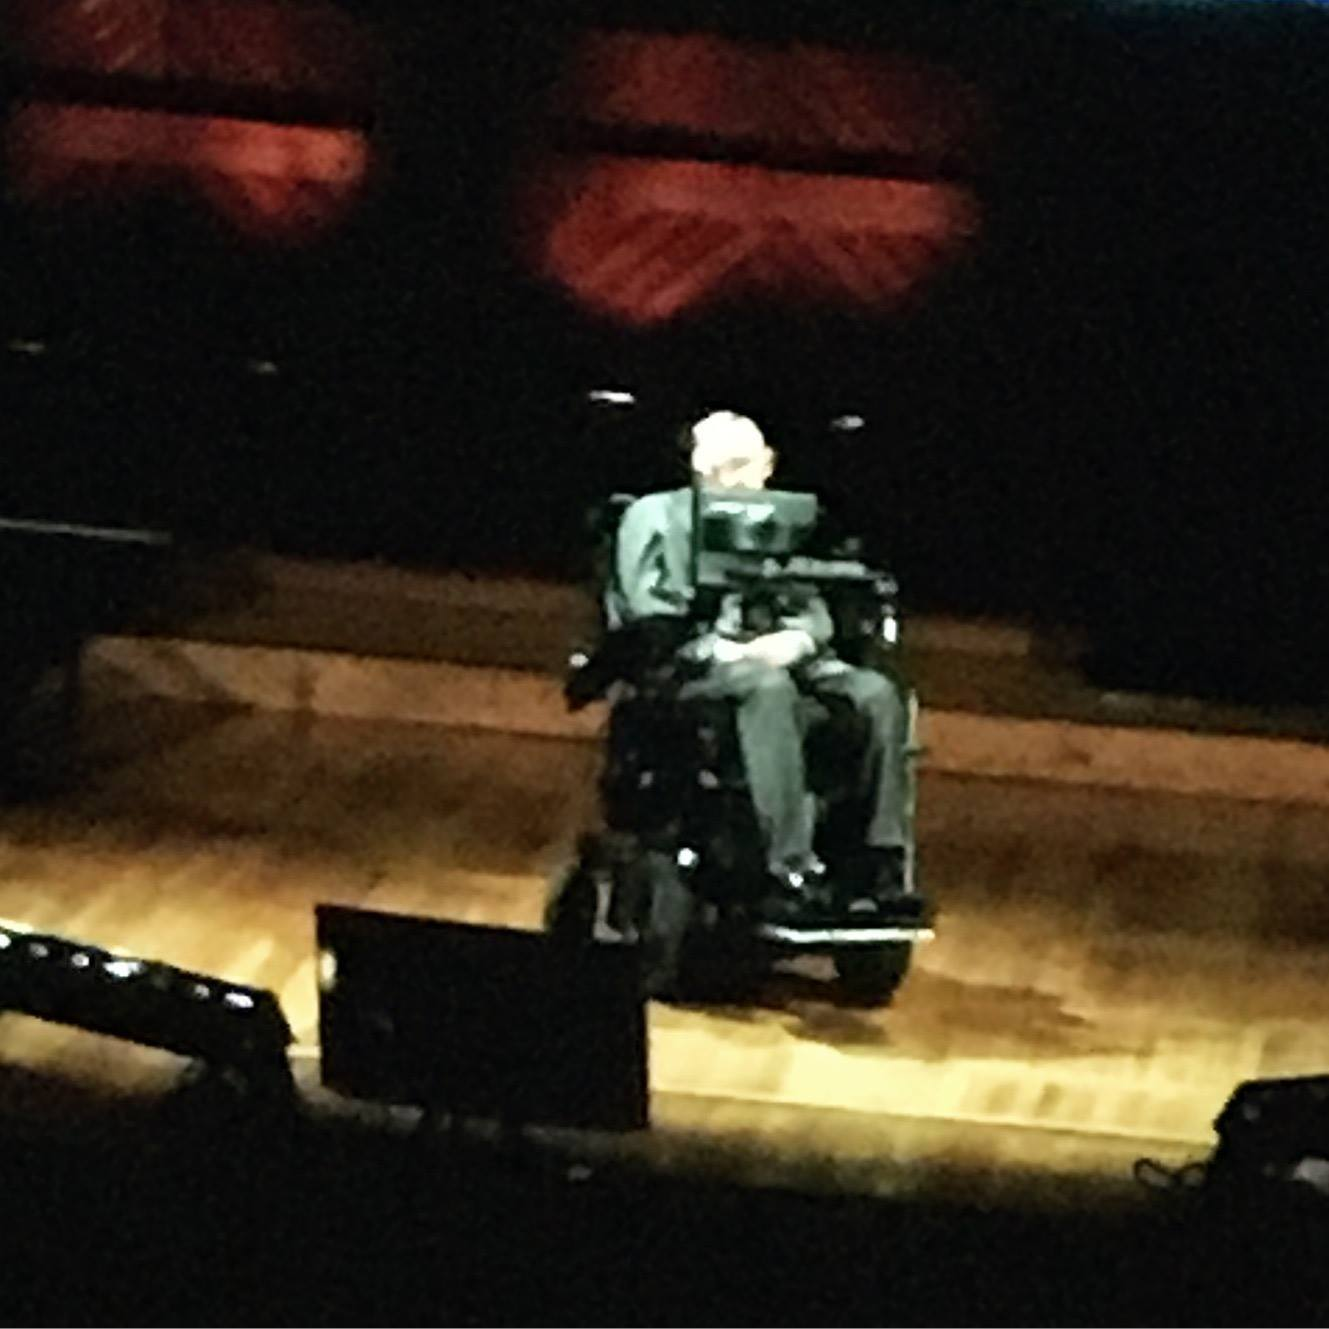 Stephen Hawking @ Cambridge, MA - While I attended Hive at Harvard, I got the opportunity to watch a talk on black holes given by Professor Stephen Hawking from Cambridge University.